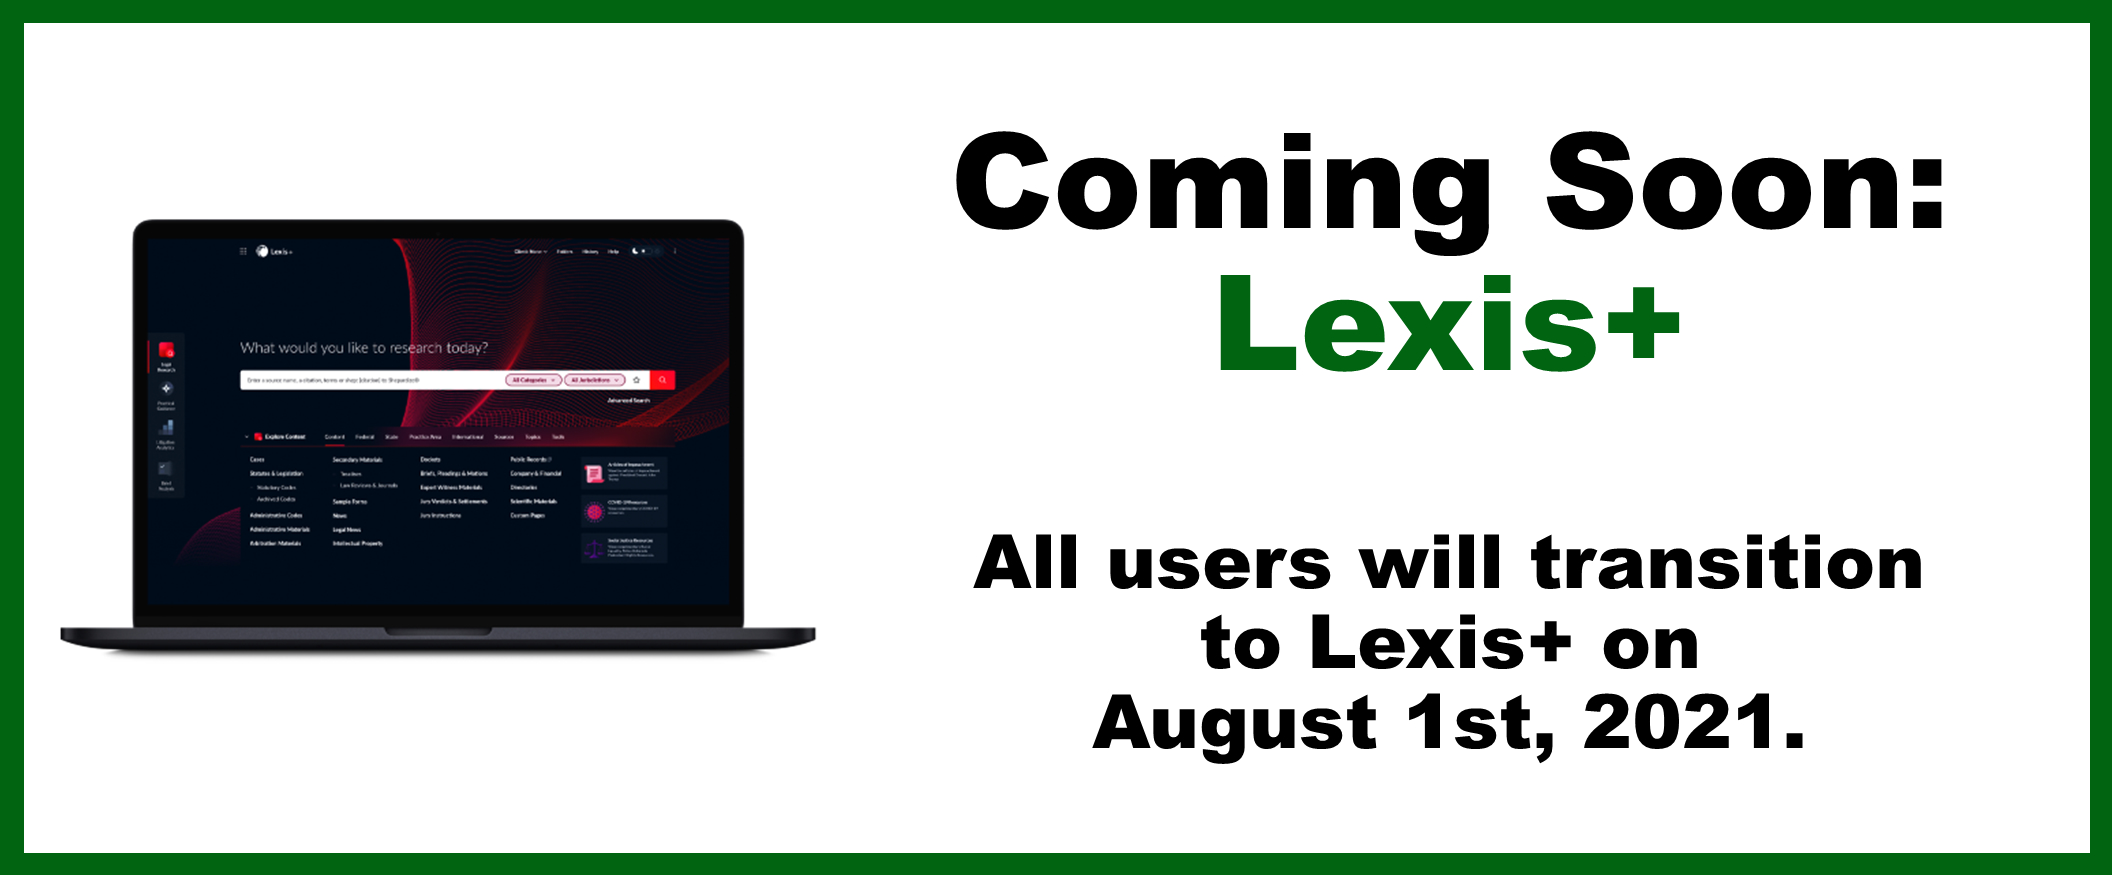 Laptop with Lexis+ interface